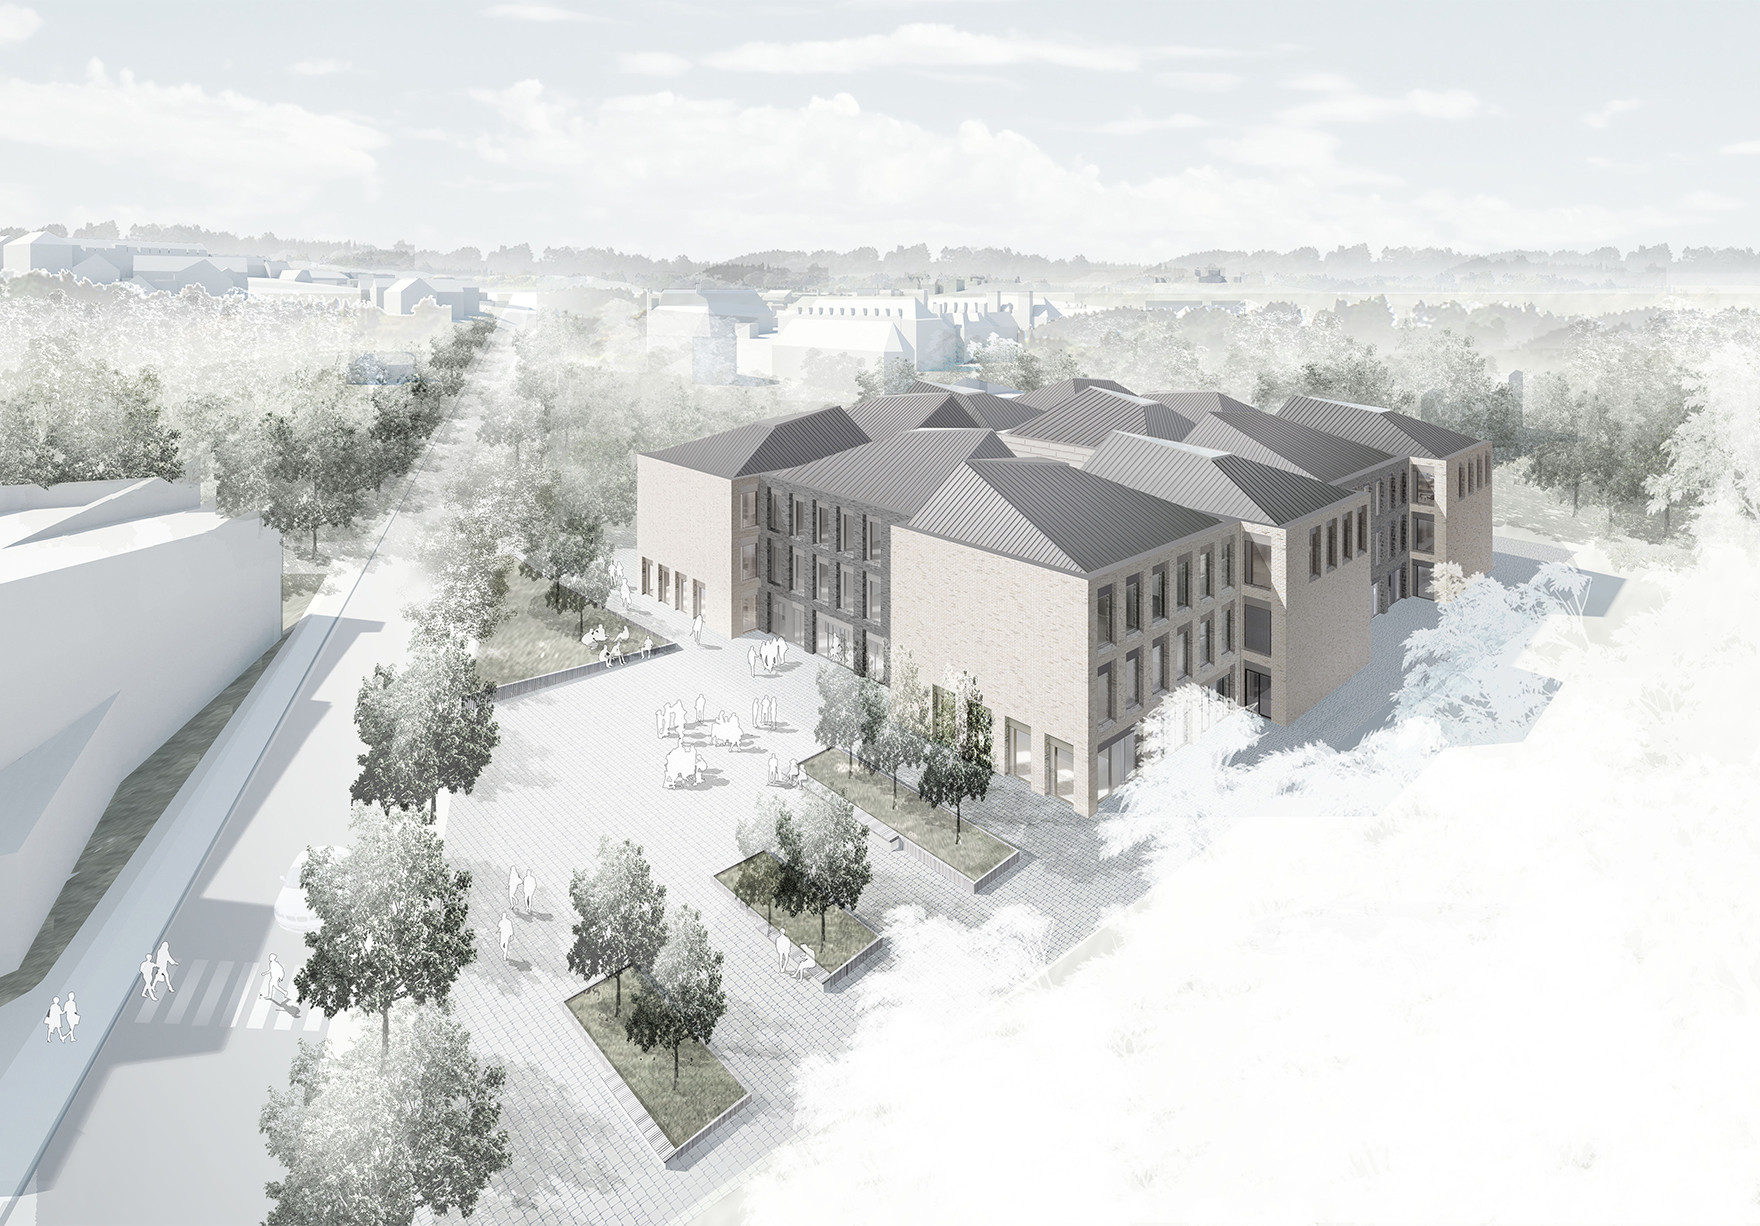 Durham University Centre For Teaching And Learning Lower Mountjoy Durham Higher Education Sketch Entrance View Lh